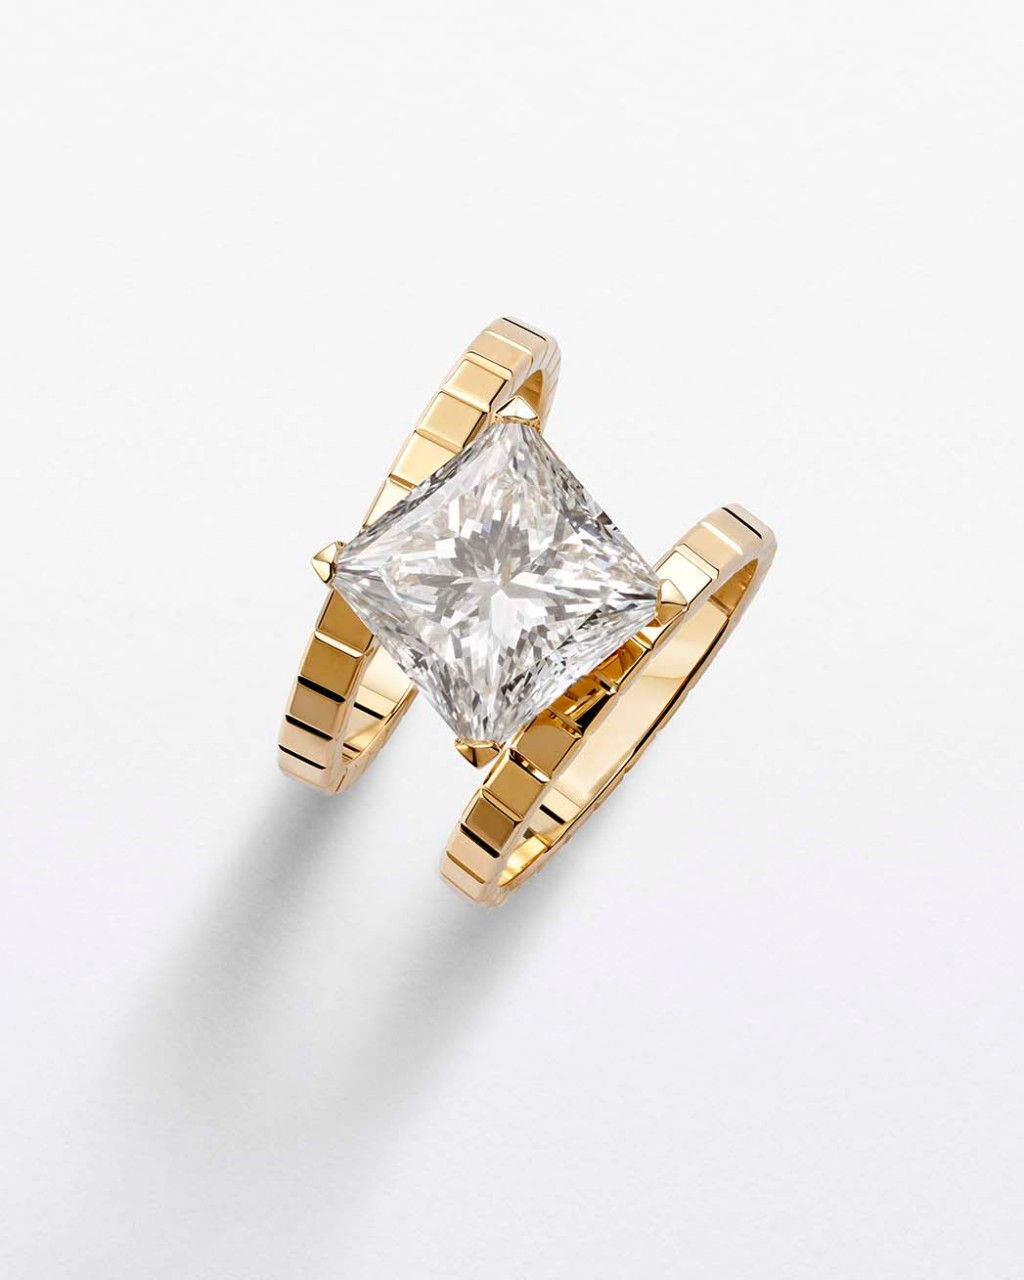 A ring in Chopard's new Ice Cube capsule collection.